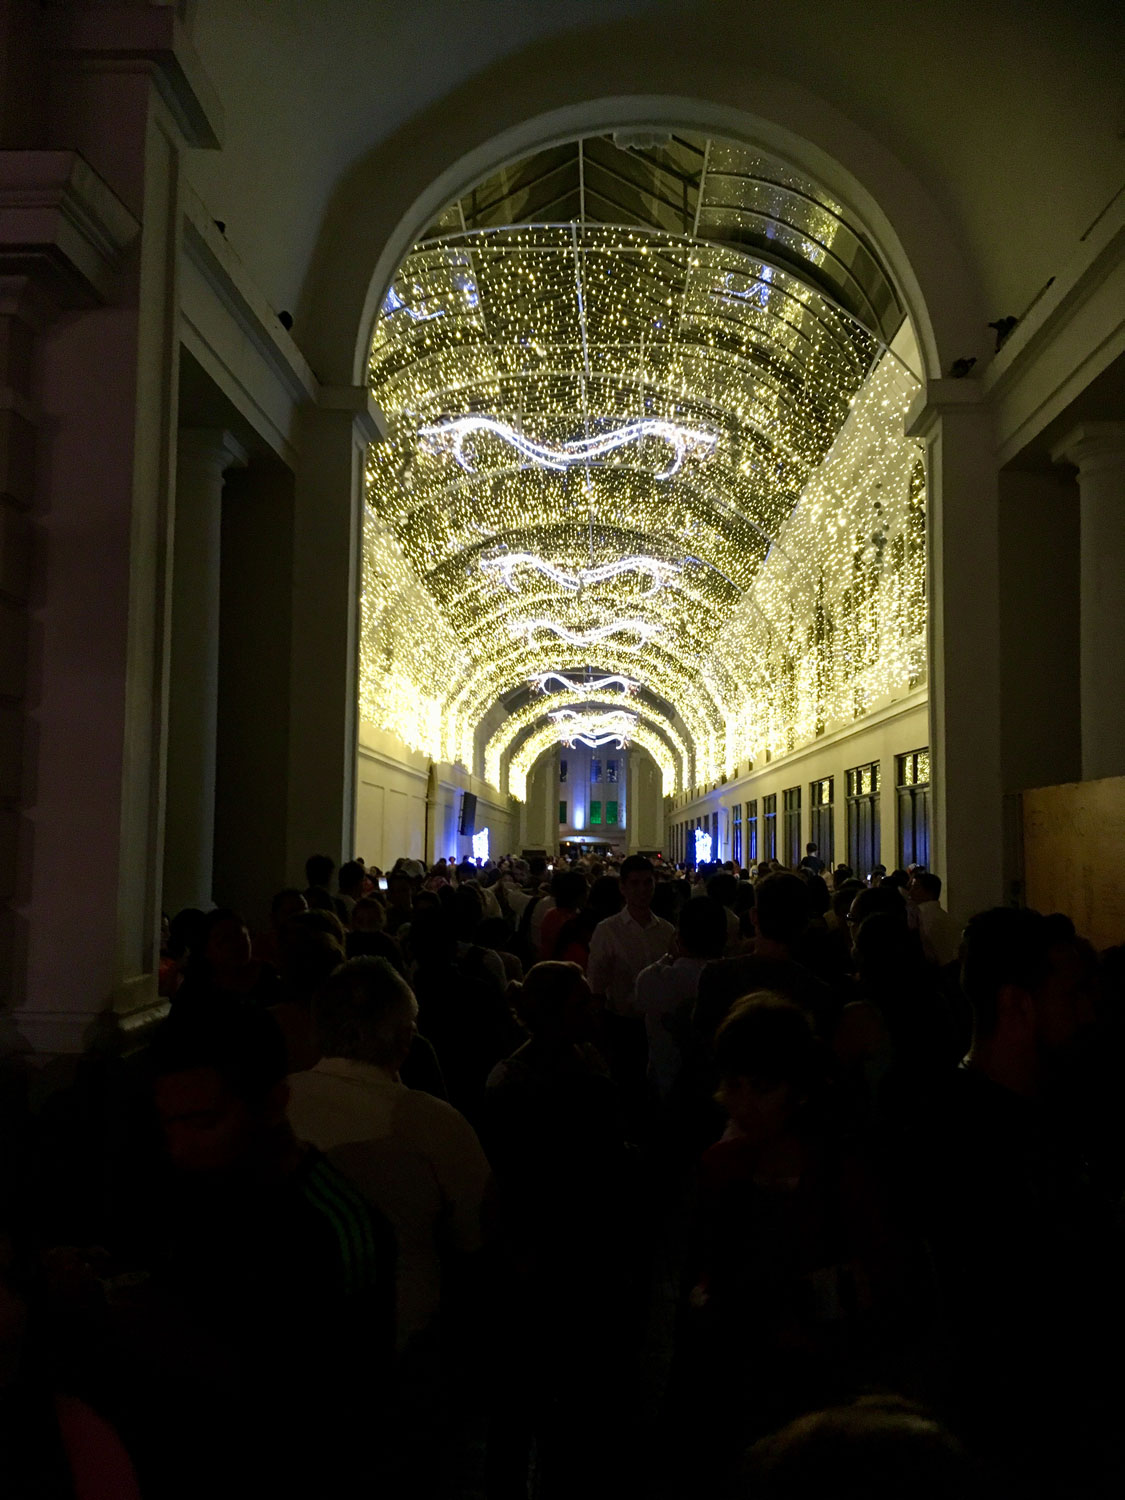 The arcade next to the Cathedral, lit for Christmas.